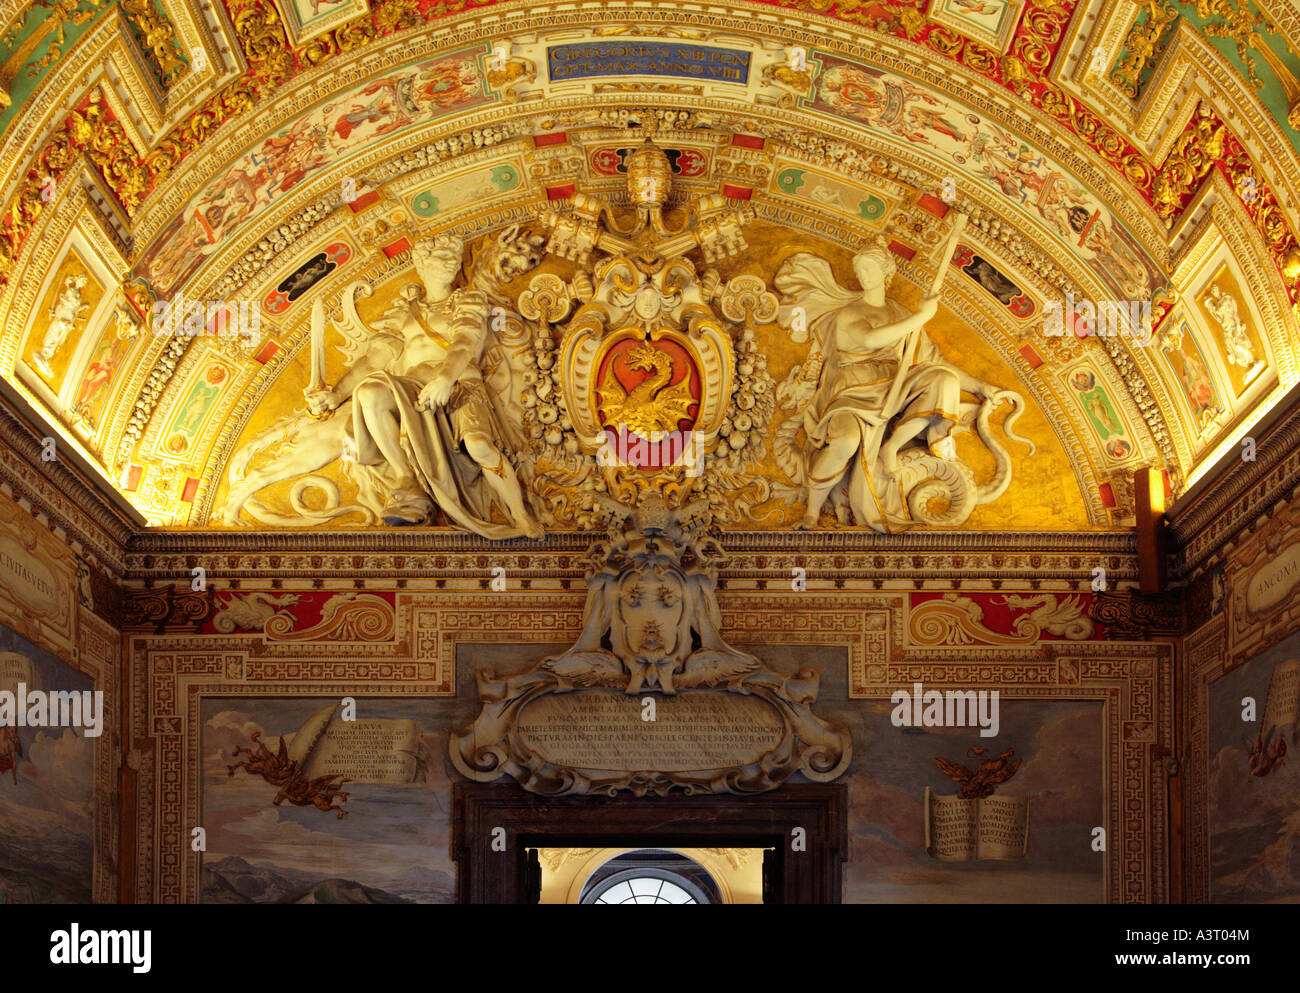 Detail of the Ceiling of the Map Room in the Vatican Museum Rome Italy - Stock Image